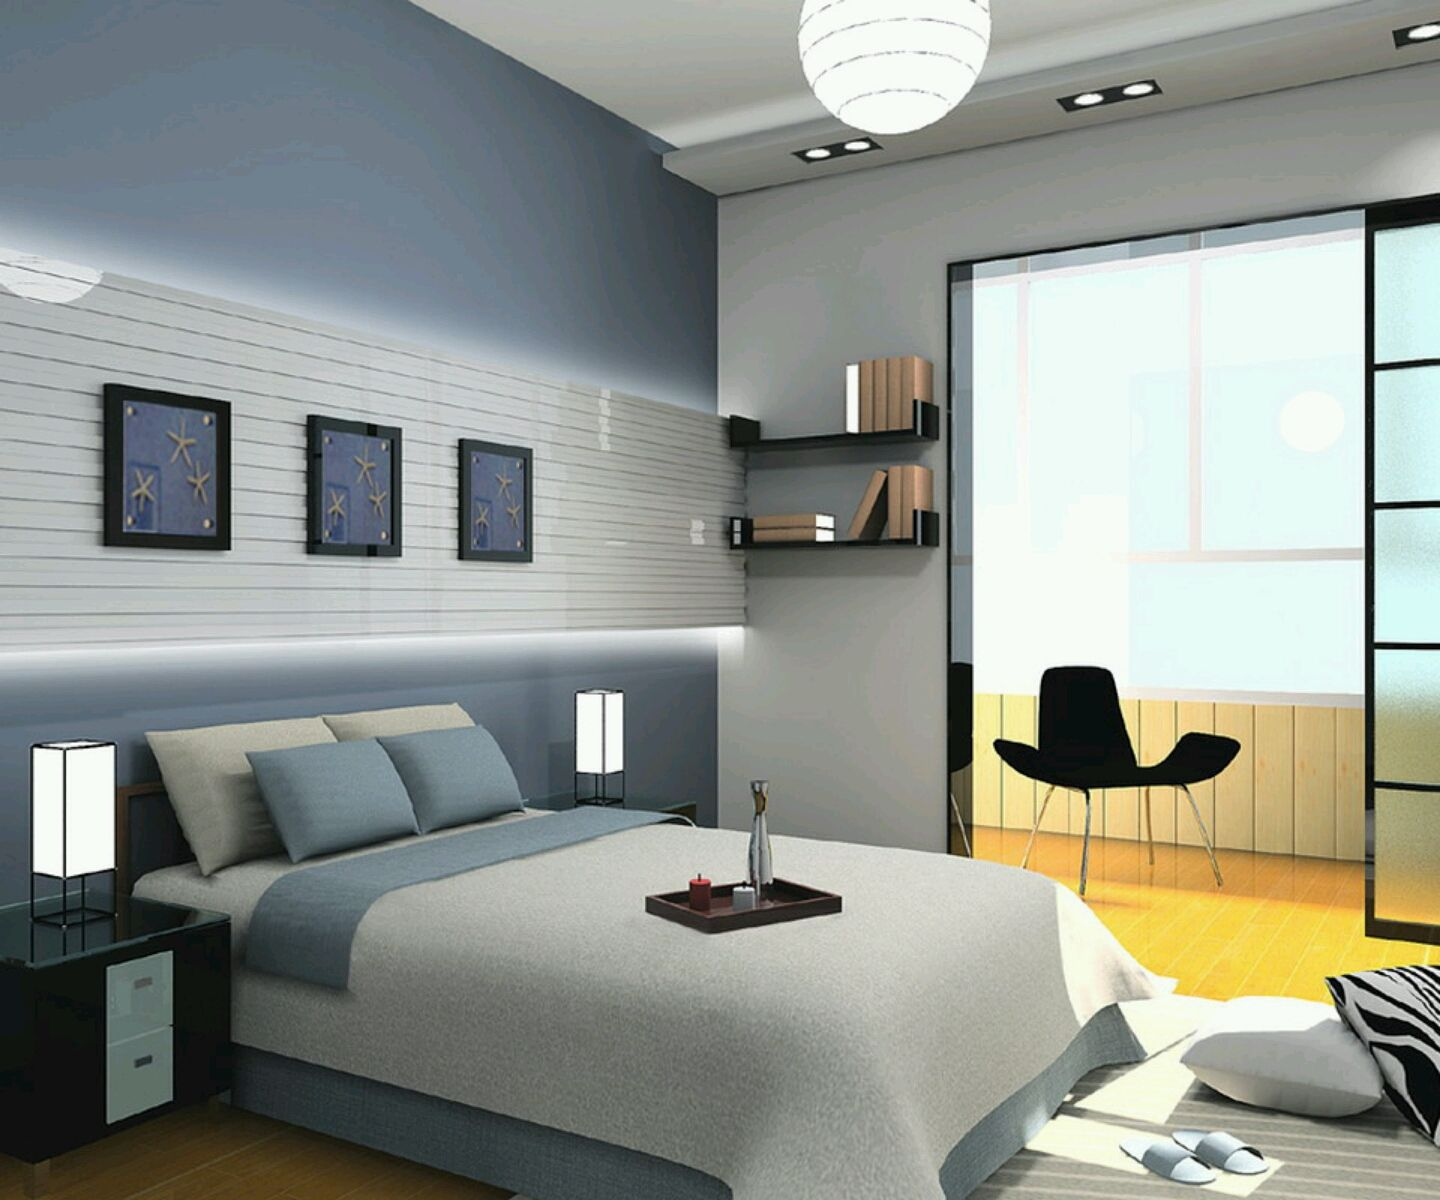 Bedroom Painting Designs Unique Modern Bedroom Ideas For Women Modern Decoration  Home Ideas Inspiration Design